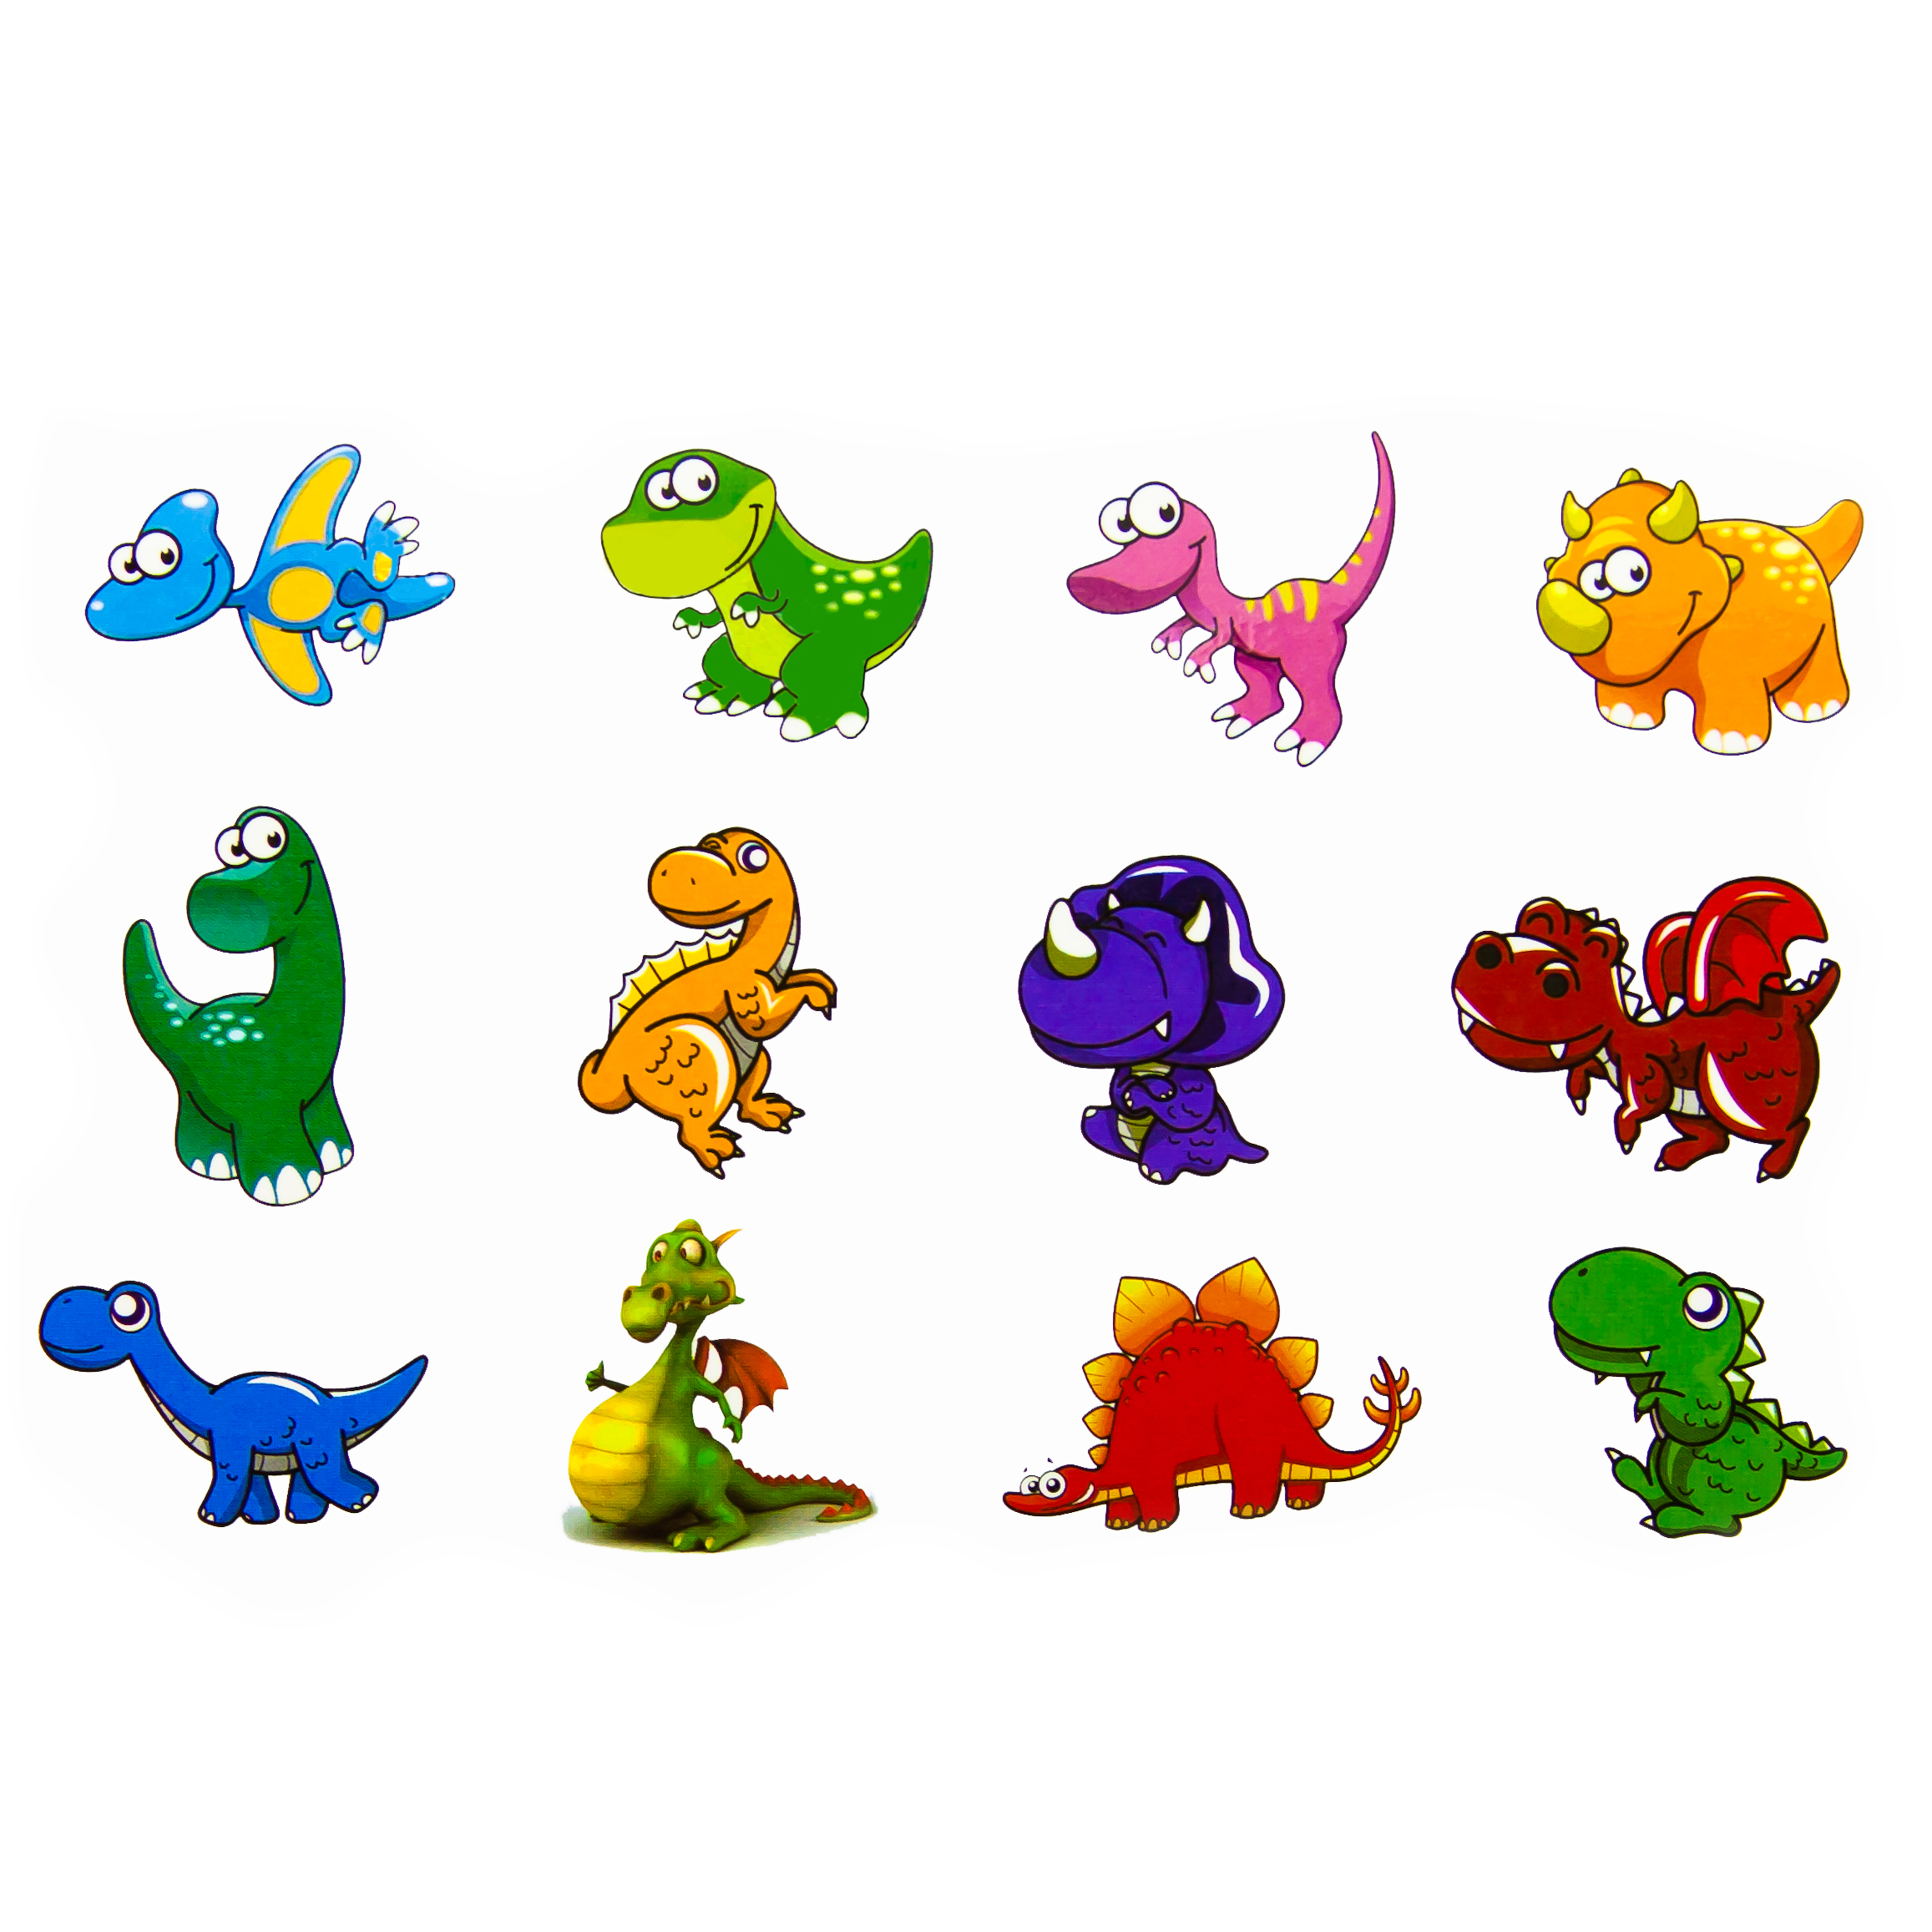 dino tattoo f r kinder 24 st ck kinder tattoos spielen ebay. Black Bedroom Furniture Sets. Home Design Ideas